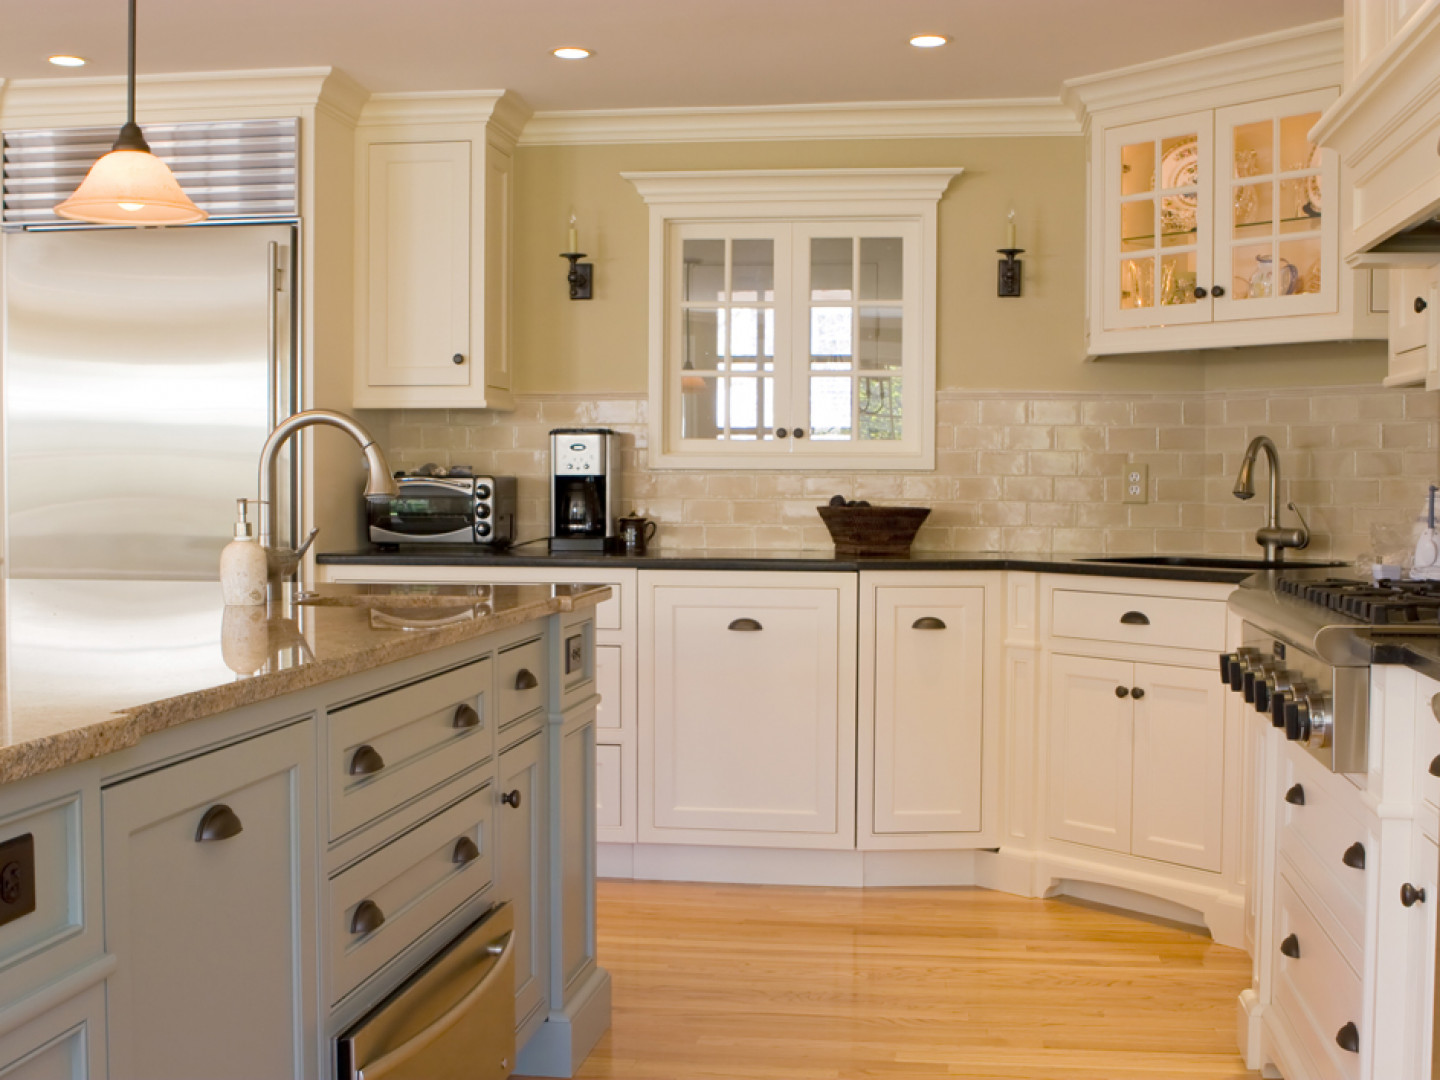 Tackling every step of your remodel